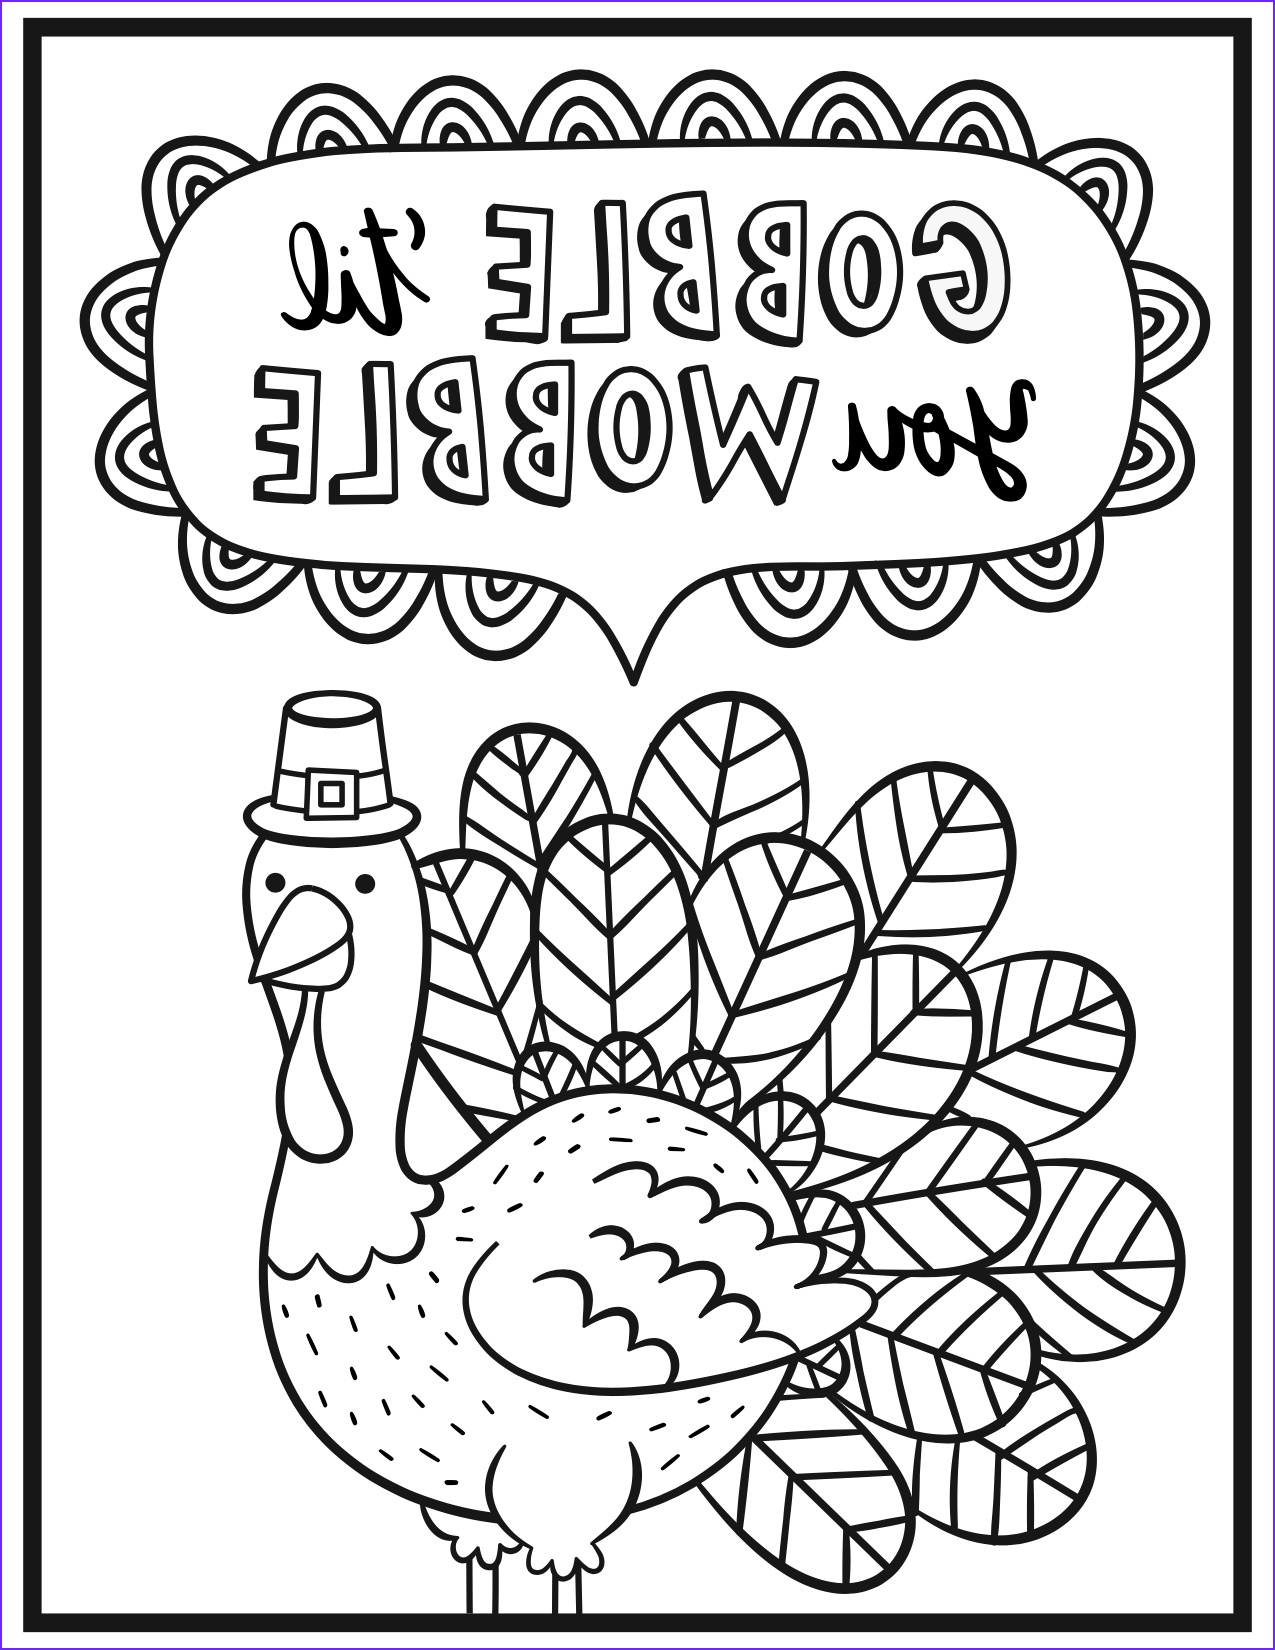 an adult coloring page for thanksgiving